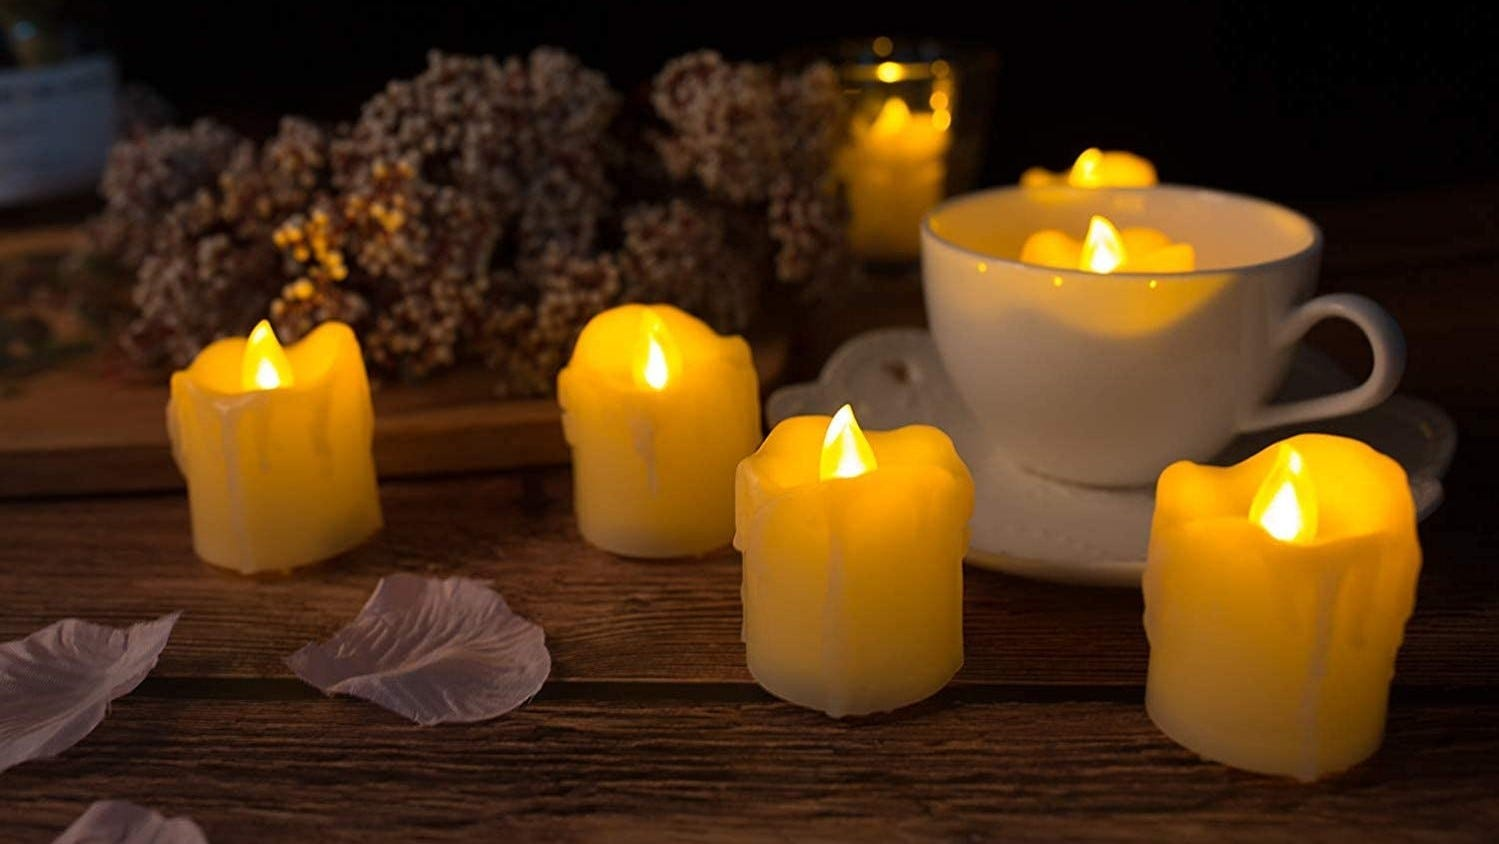 Flickering fake candles on a table.